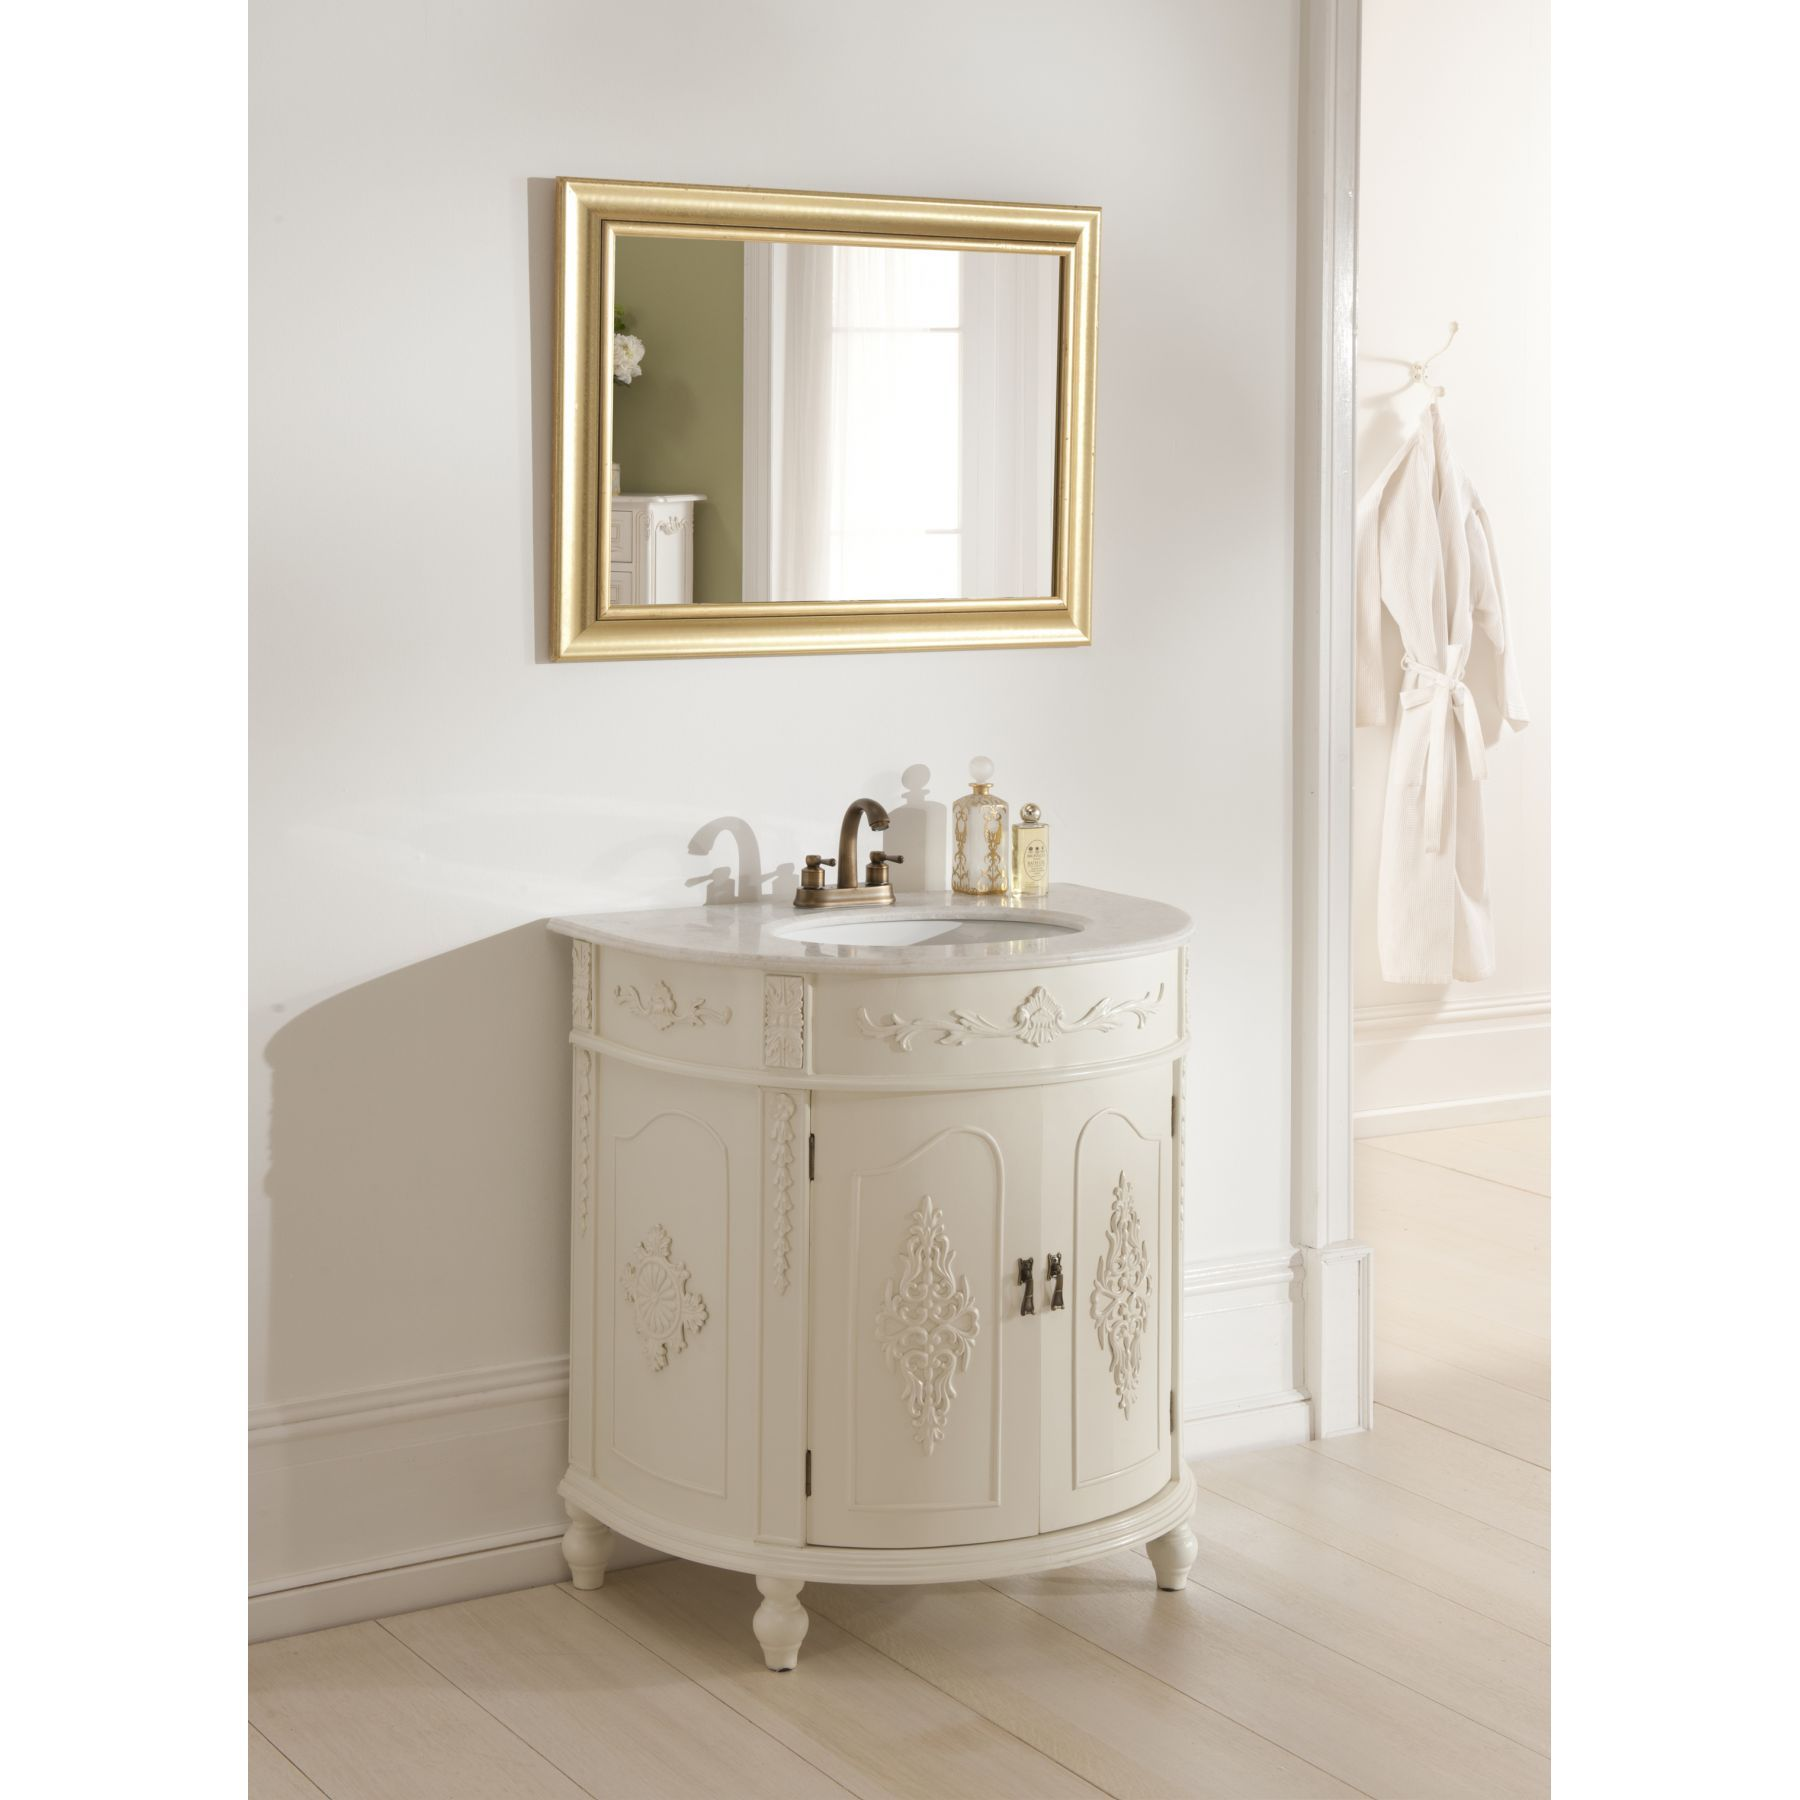 Antique french style vanity unit bathroom basin for French shabby chic bathroom ideas